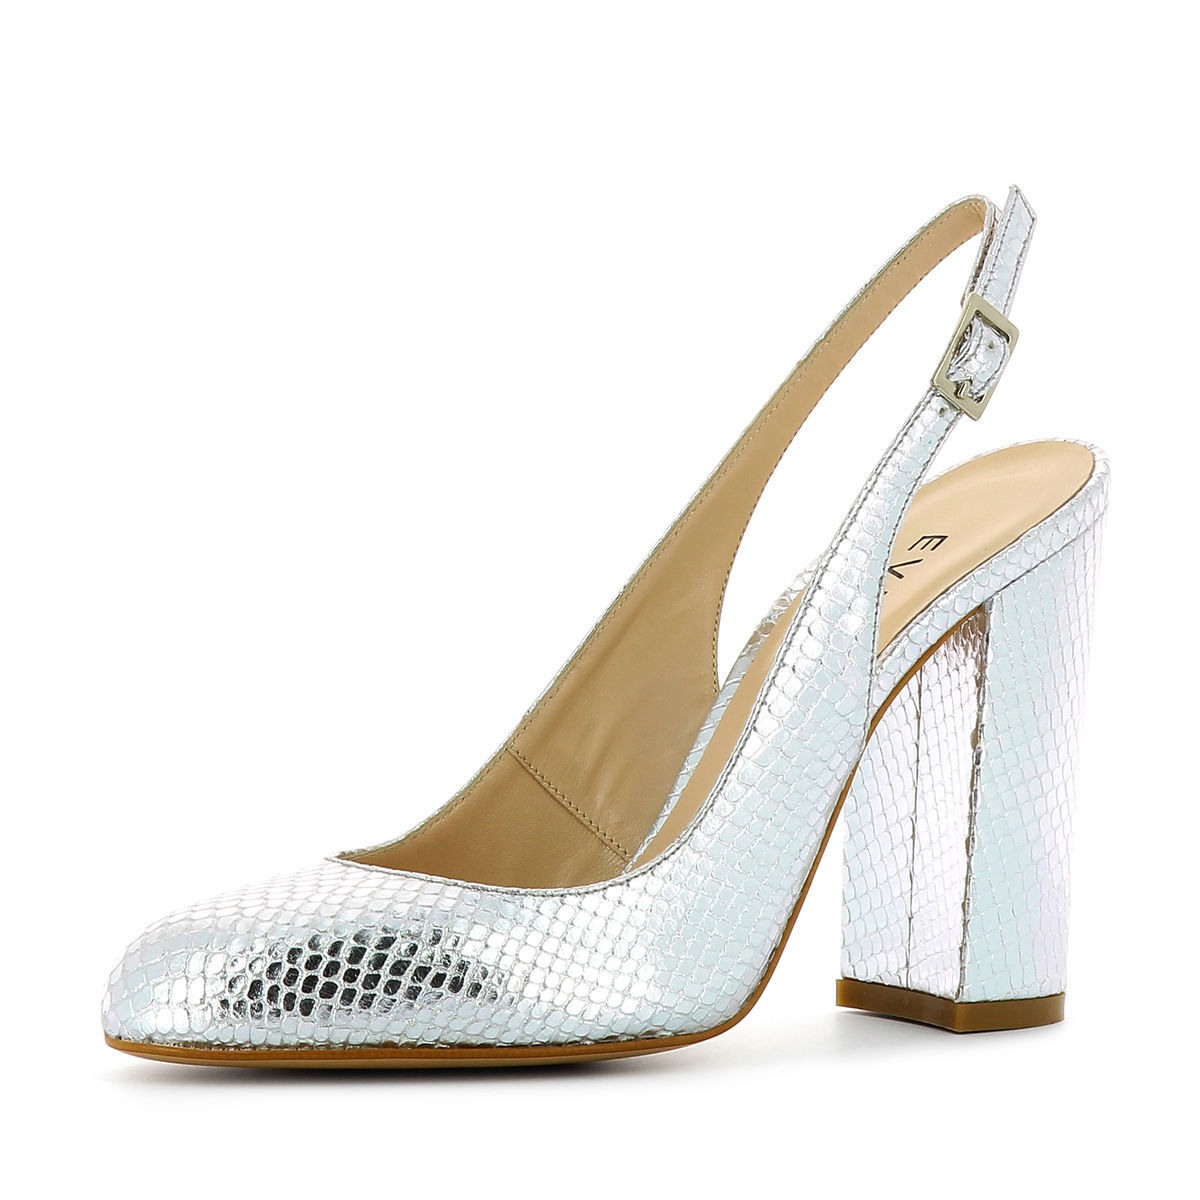 Evita Shoes ILENEA Damen Sling Pumps Pythonprägung Silber 37